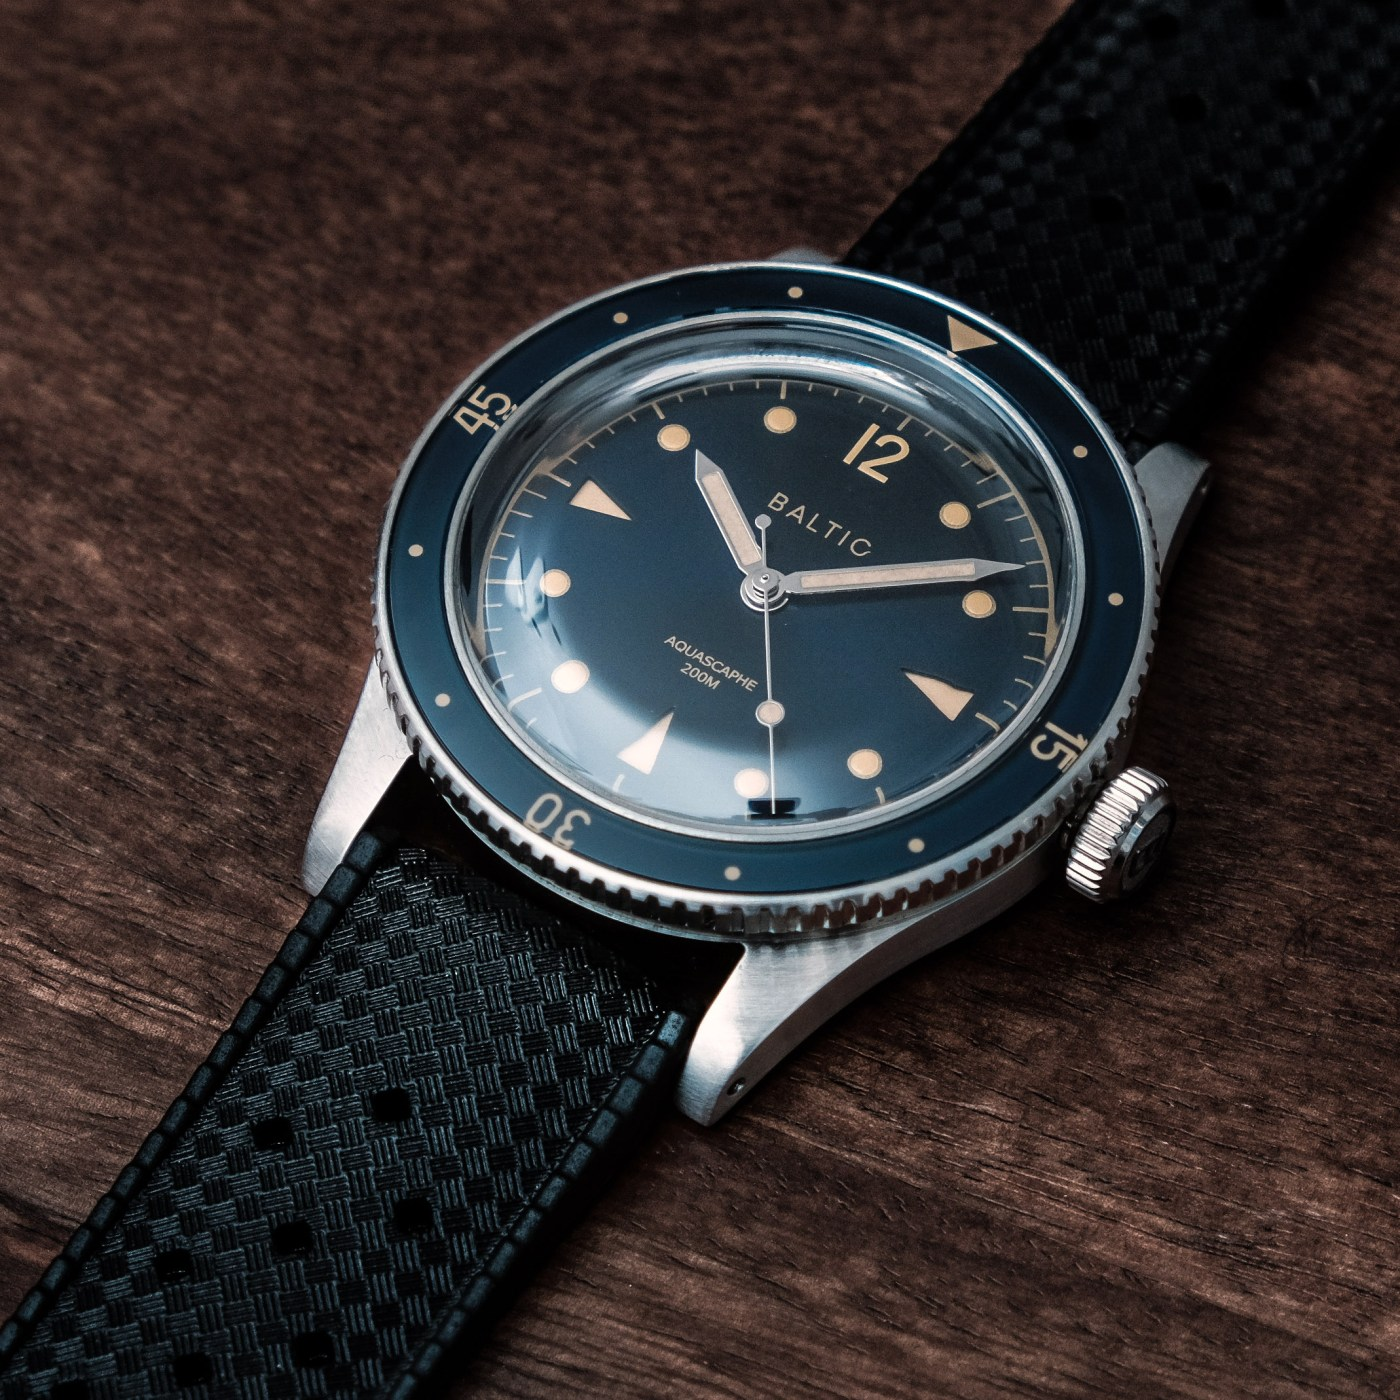 Baltic Aquascaphe blue gilt tropic dial